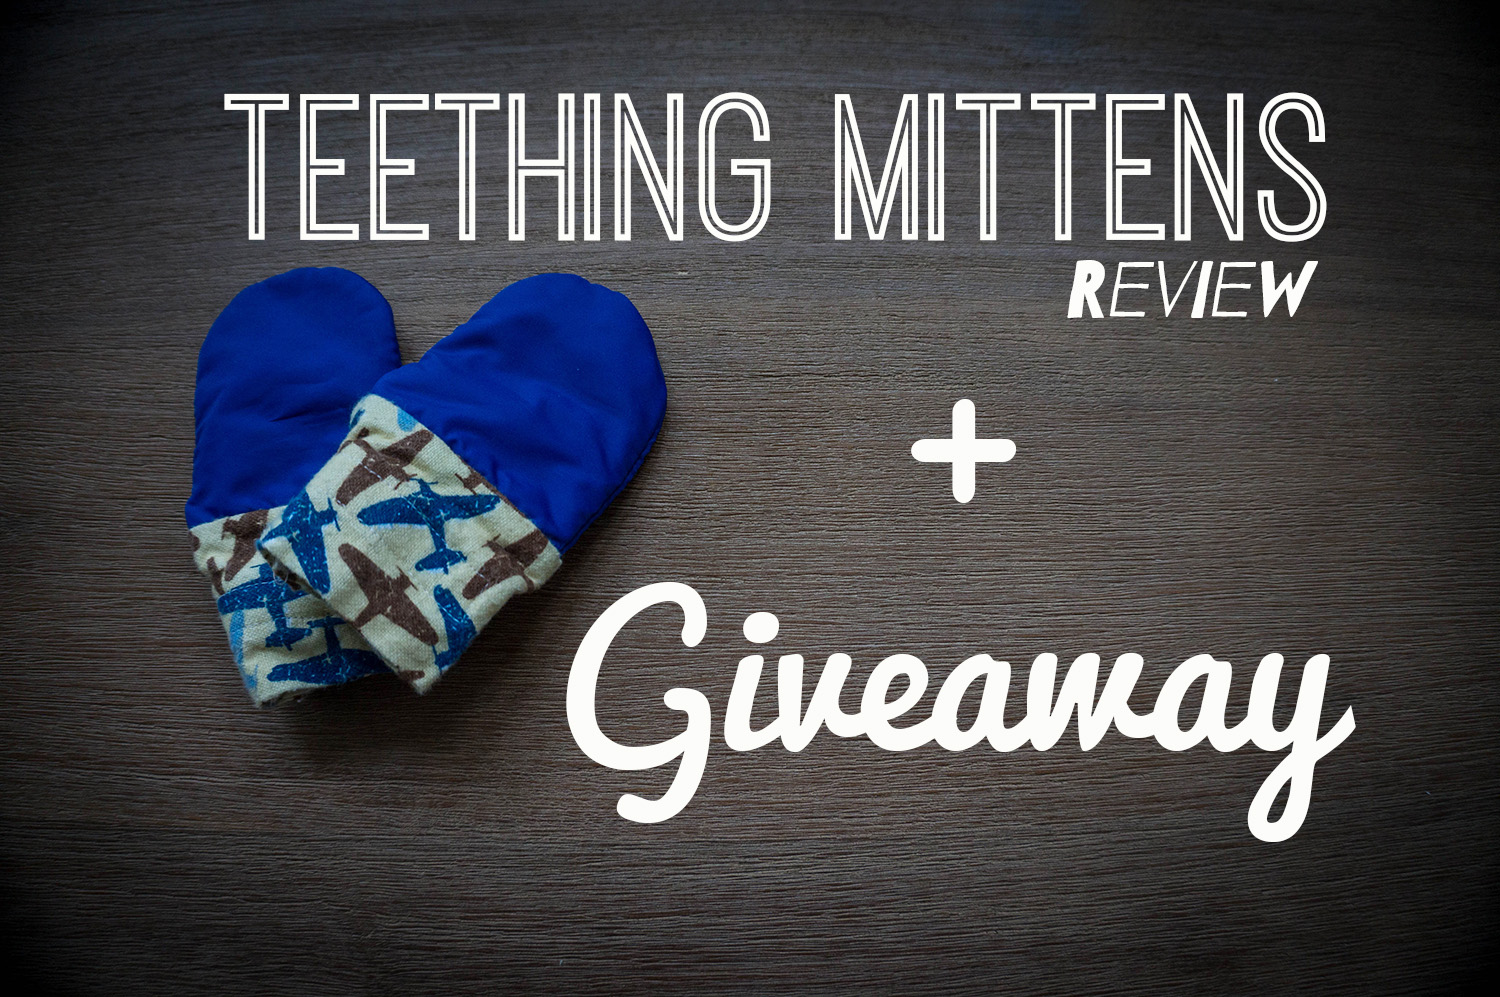 Teething Mittens Review